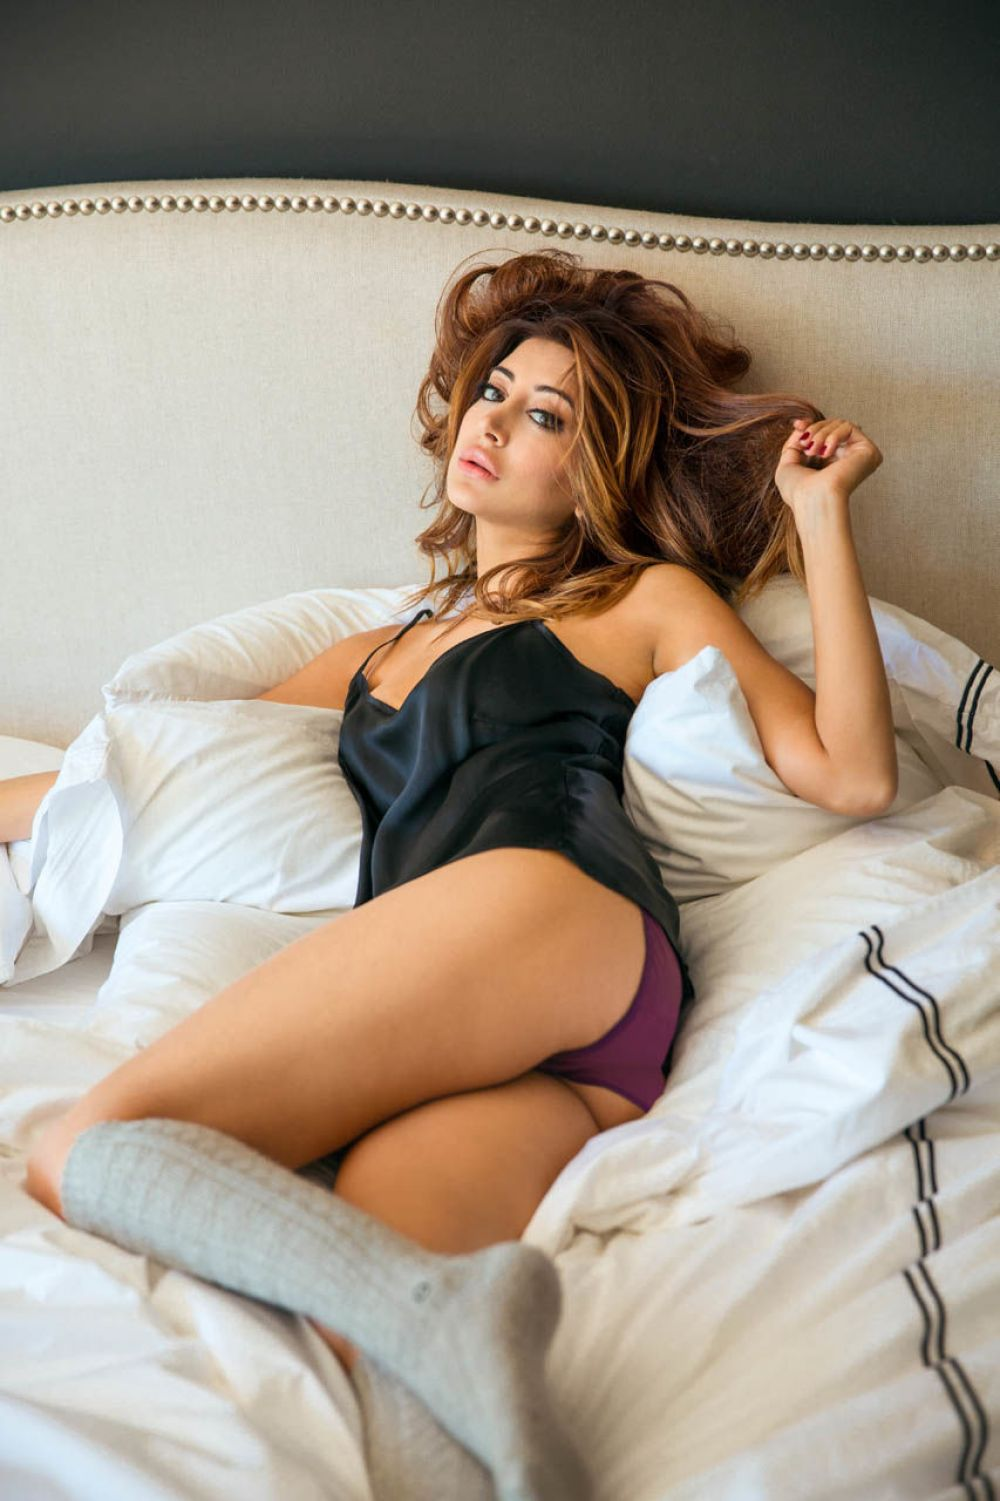 Celebrites Noureen DeWulf nudes (67 photo), Tits, Fappening, Boobs, lingerie 2020